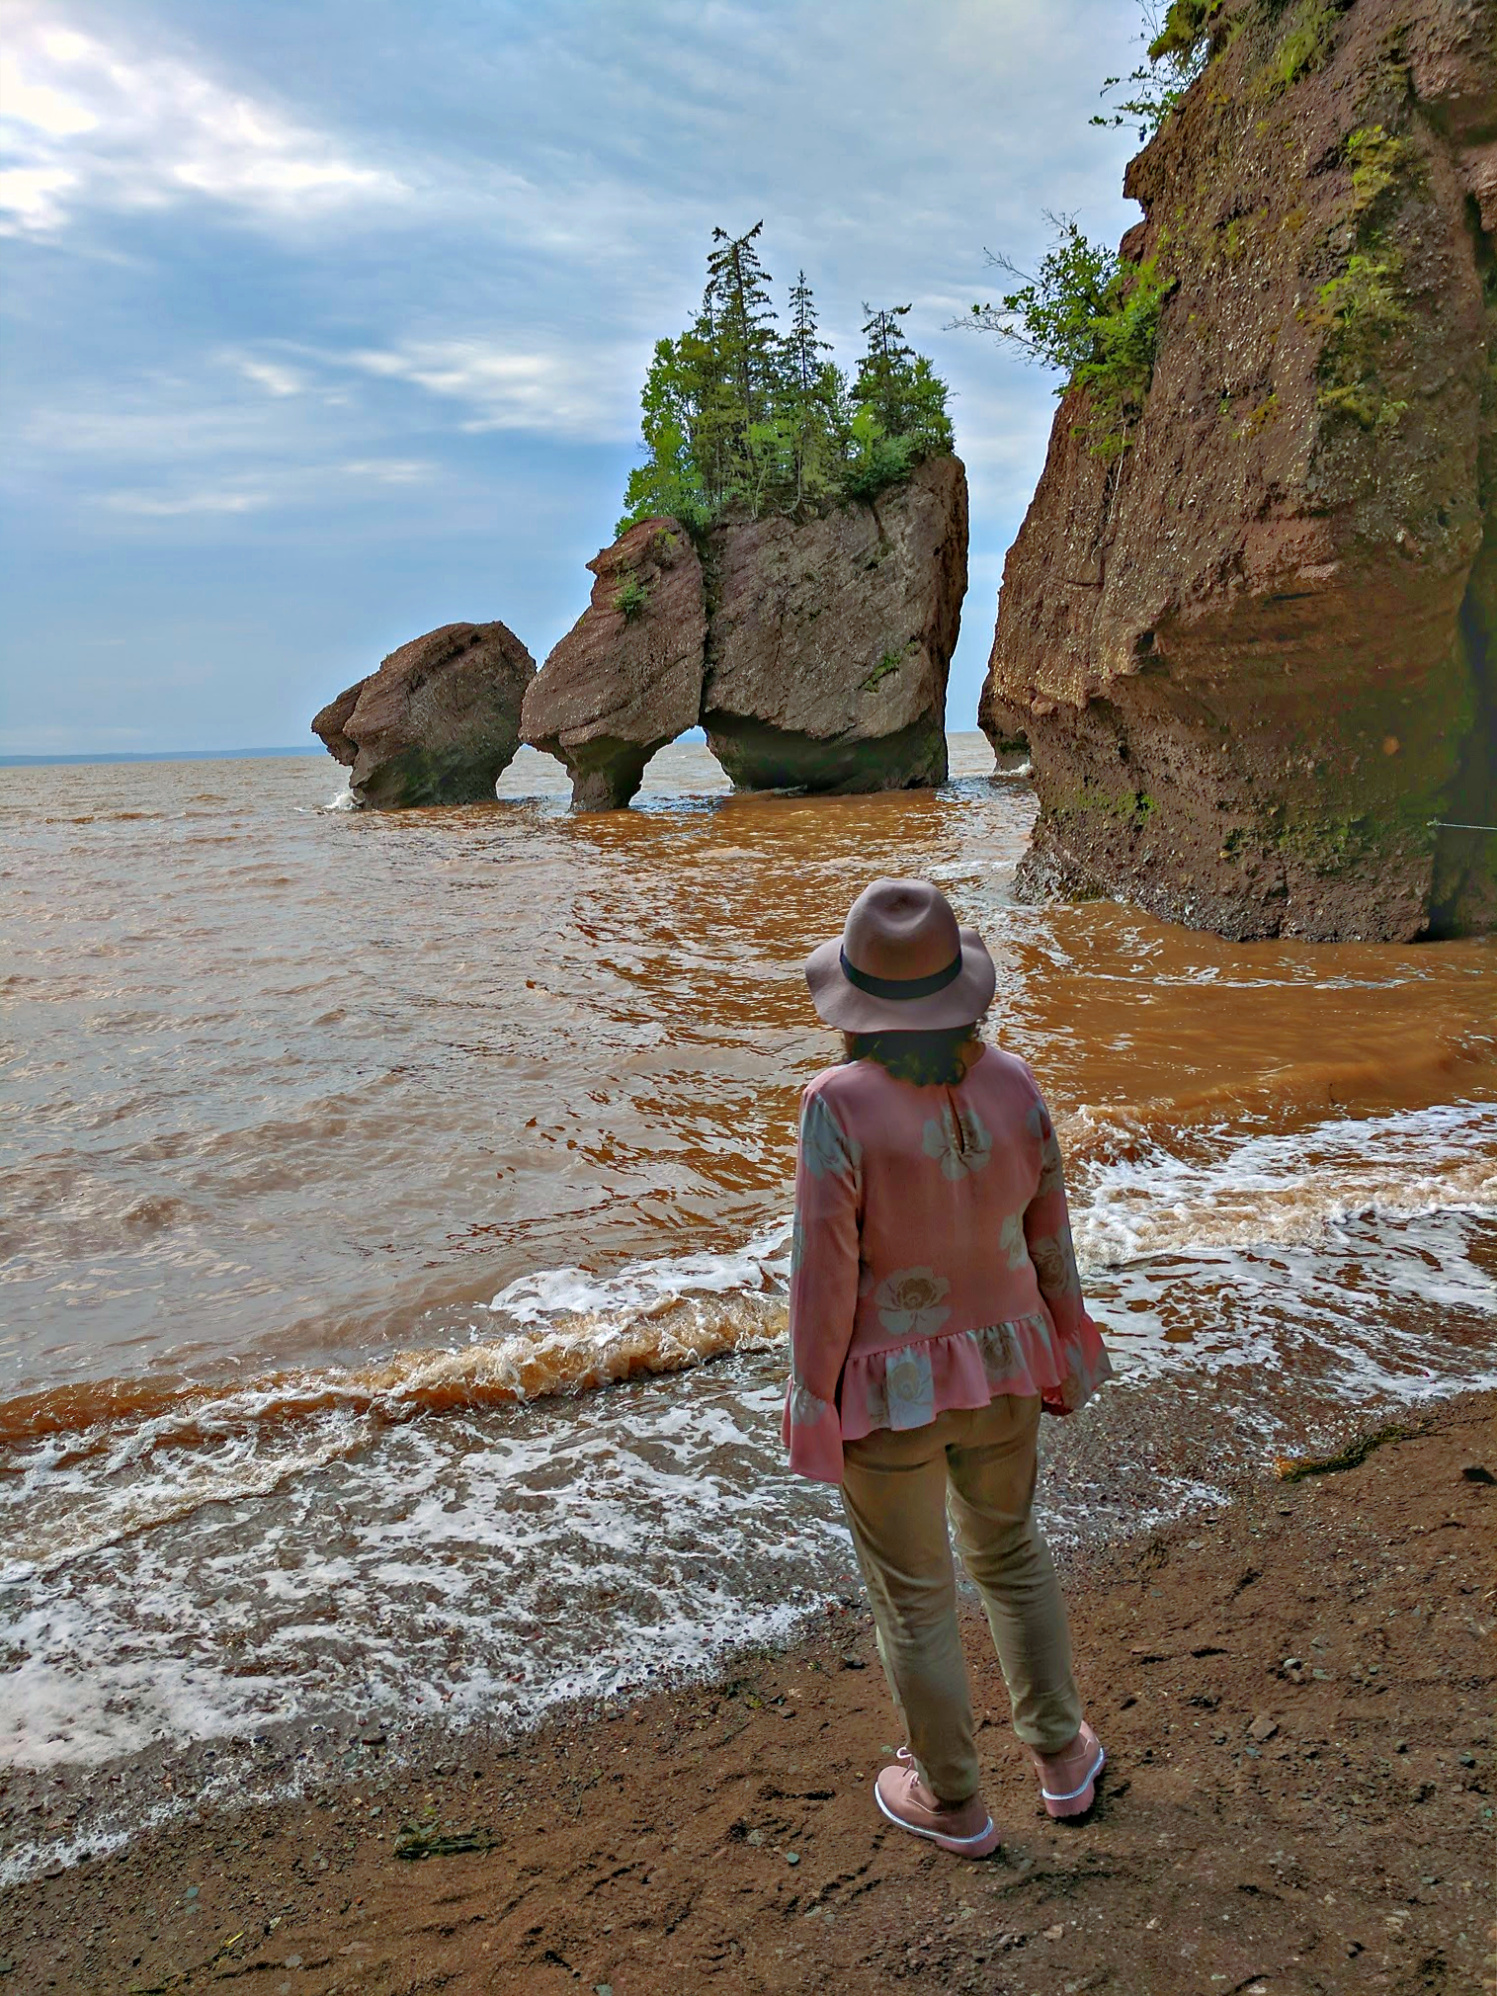 Maritime Canada - Bay of Fundy. Hopewell Rocks in New Brunswick. Waiting for the low tide.